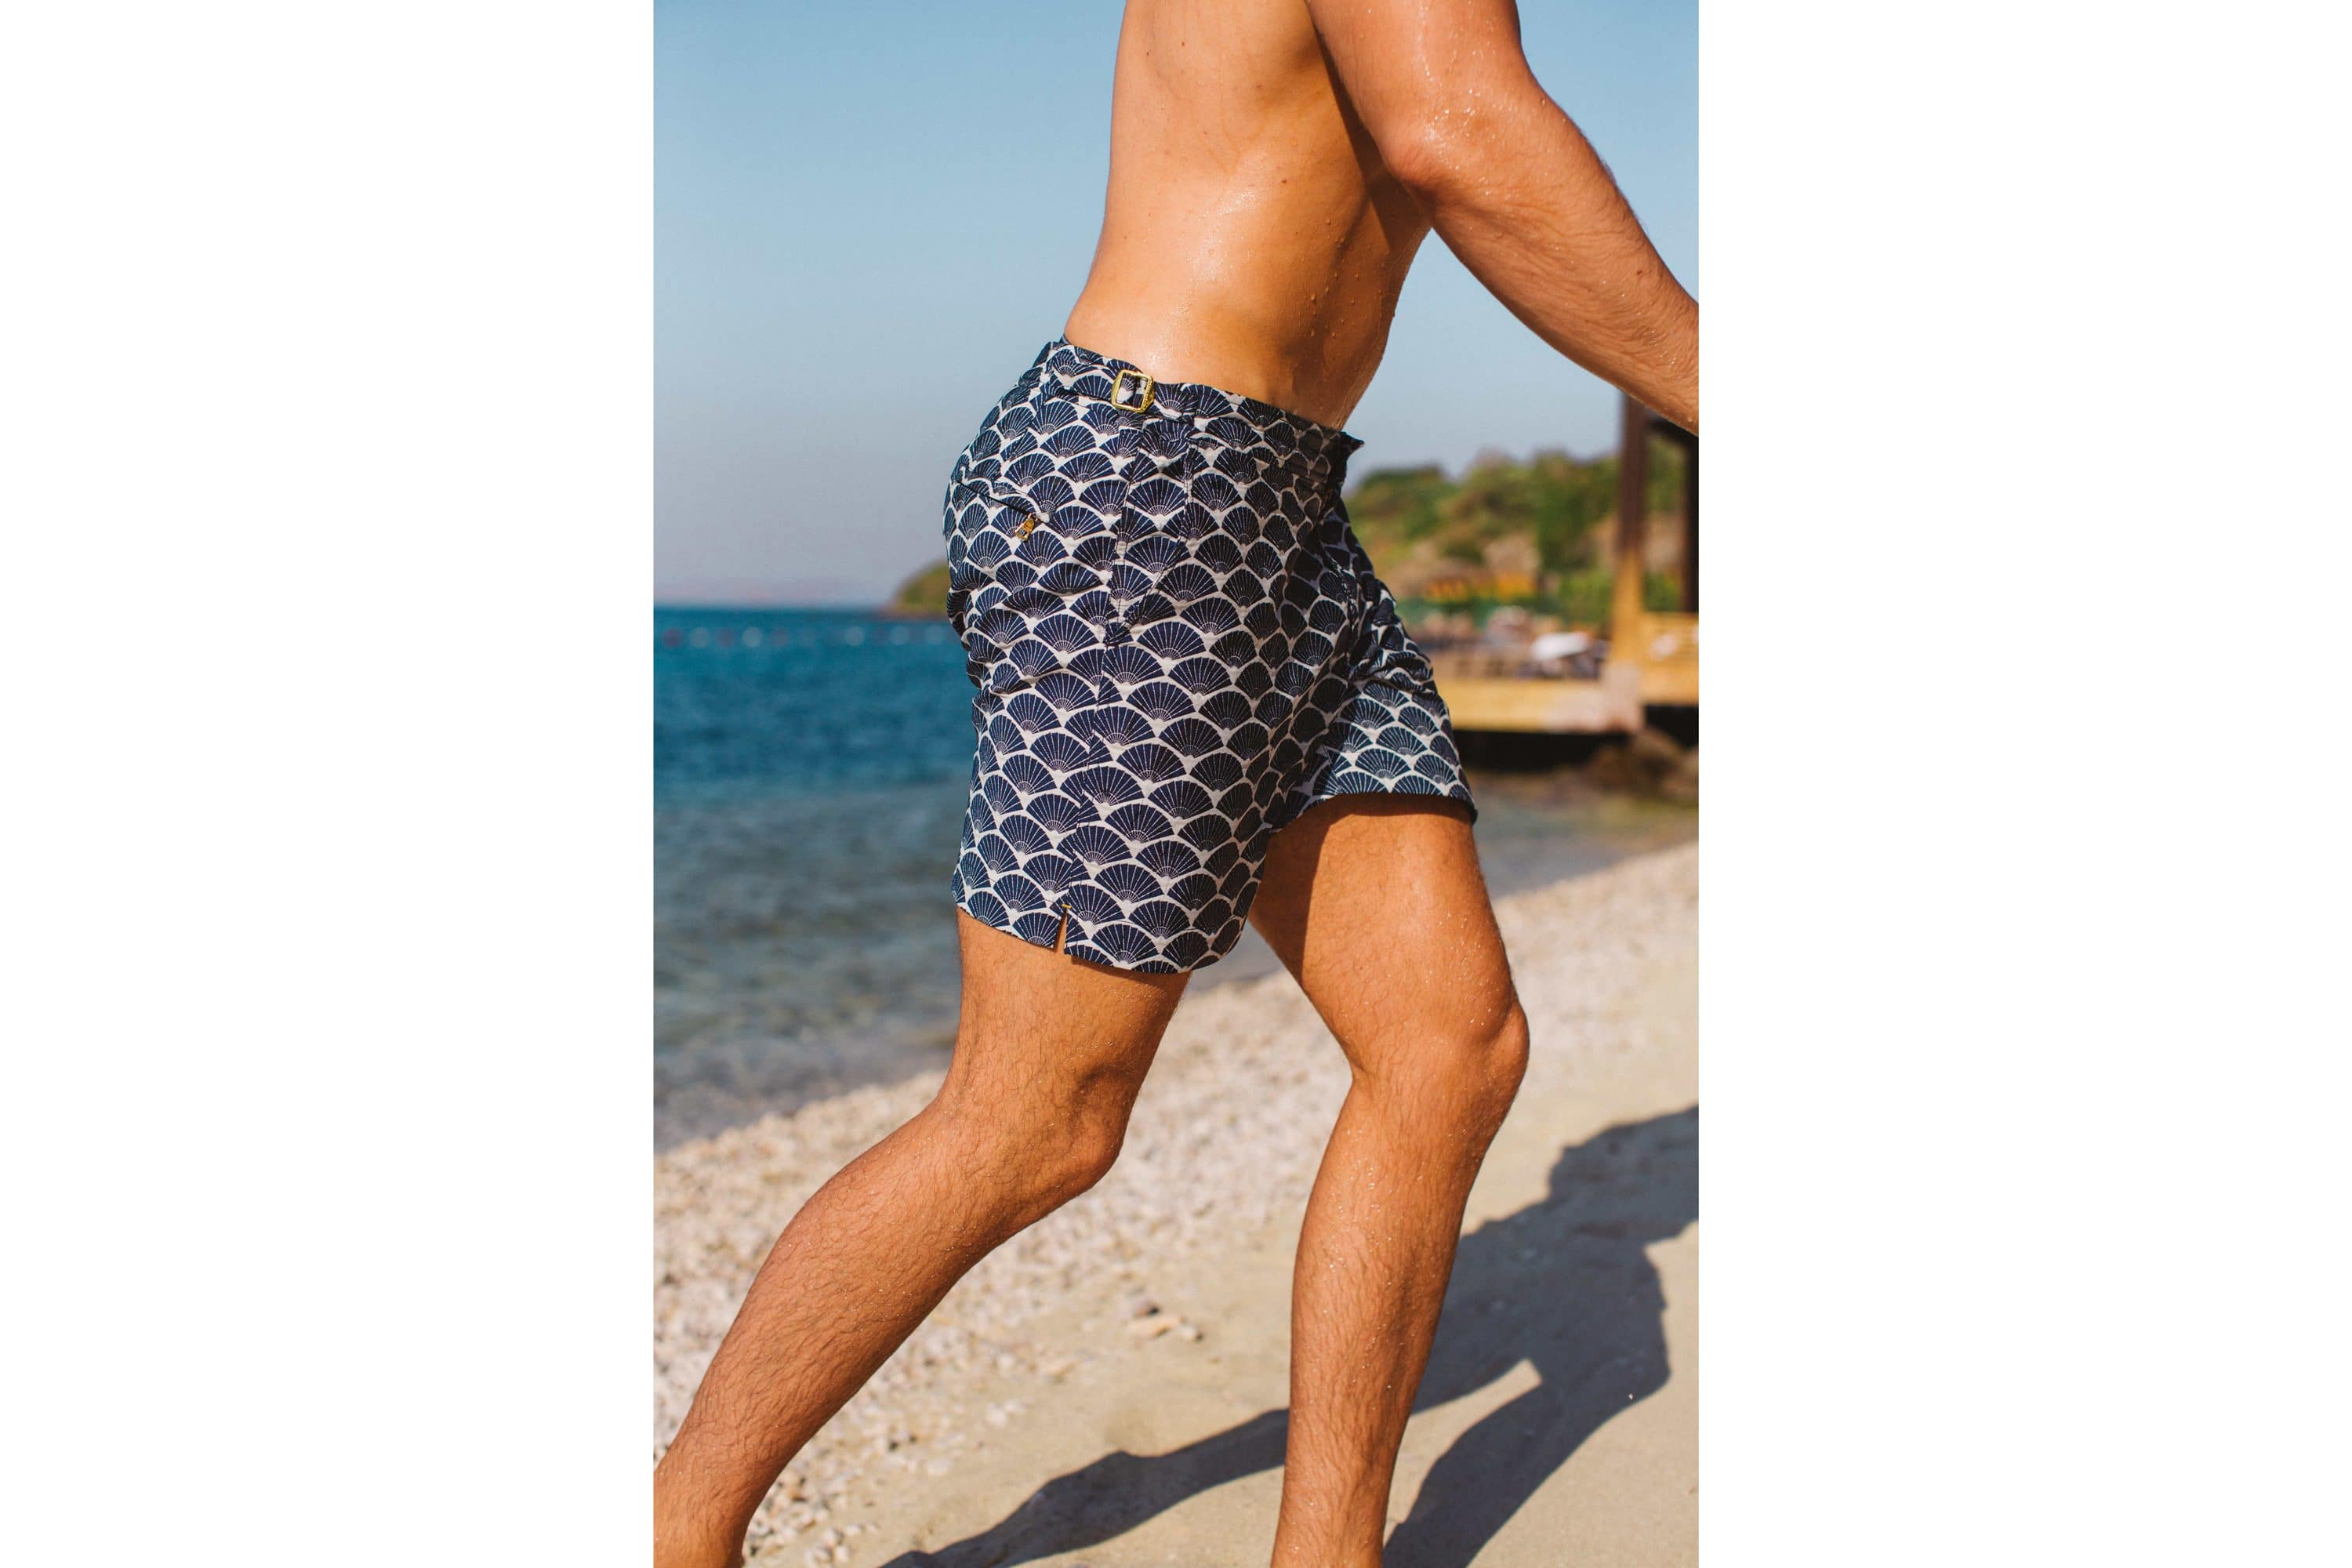 Man running on beach with a pair of Orlebar Brown shorts